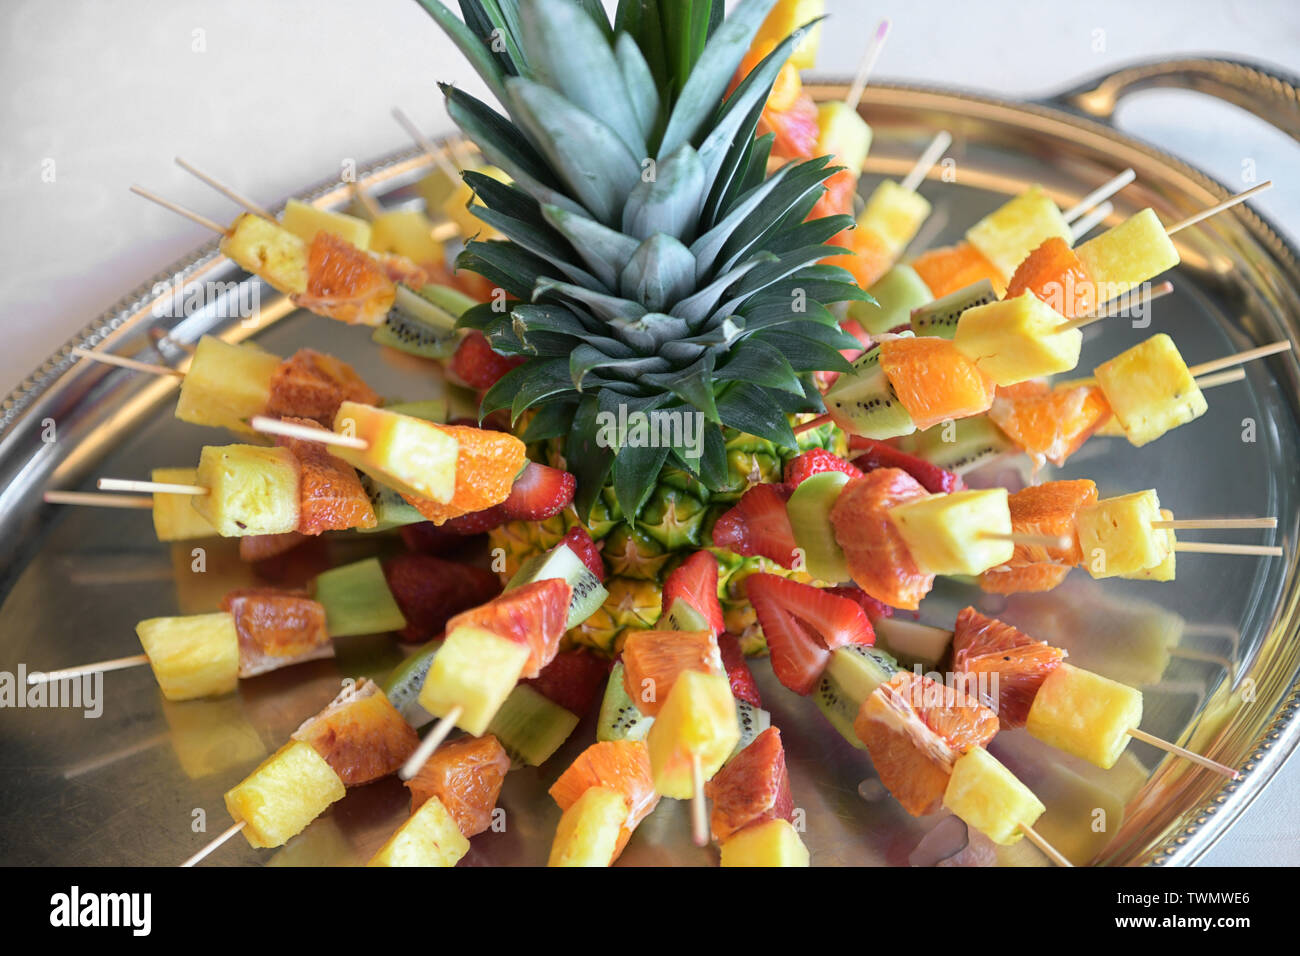 Fresh tropical fruit kebabs or skewers radiating from a pineapple with leaves threaded with diced pineapple, citrus, melon and strawberries in a close - Stock Image